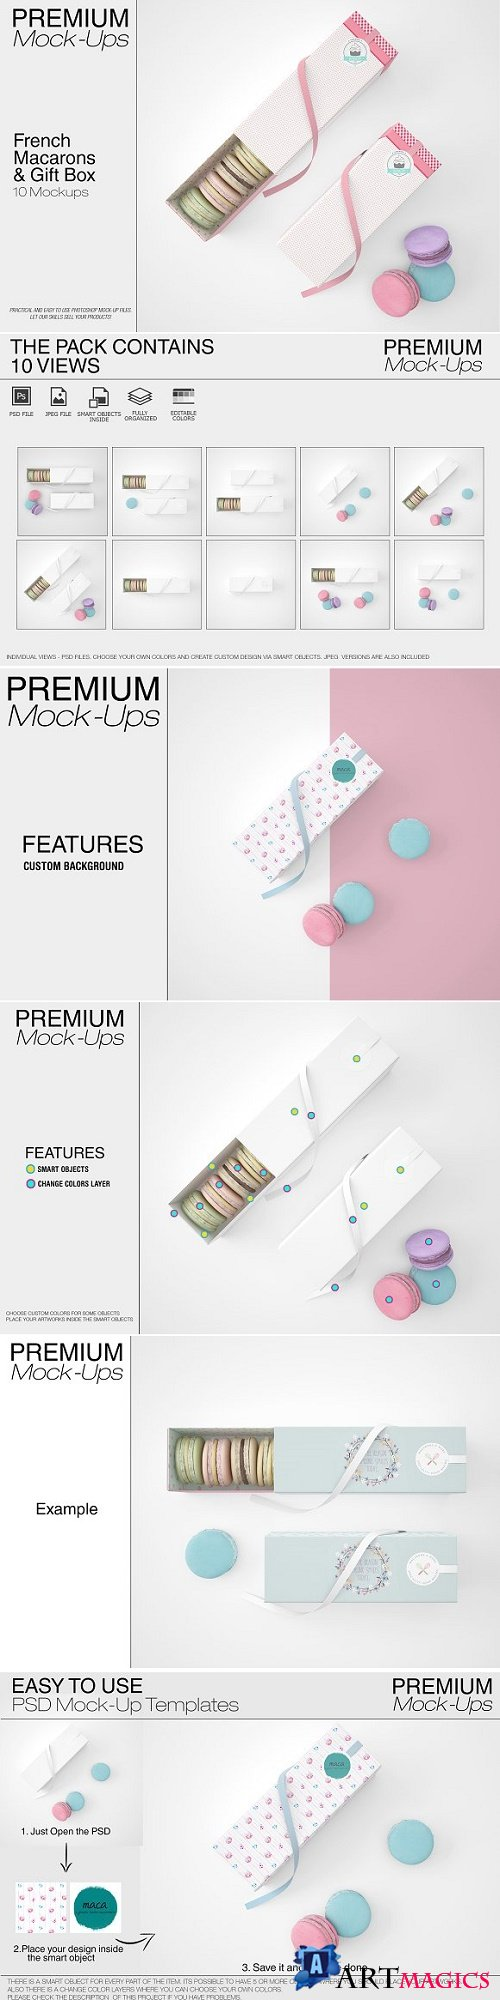 French Macarons & Gift Box Mockup Pack 22050119